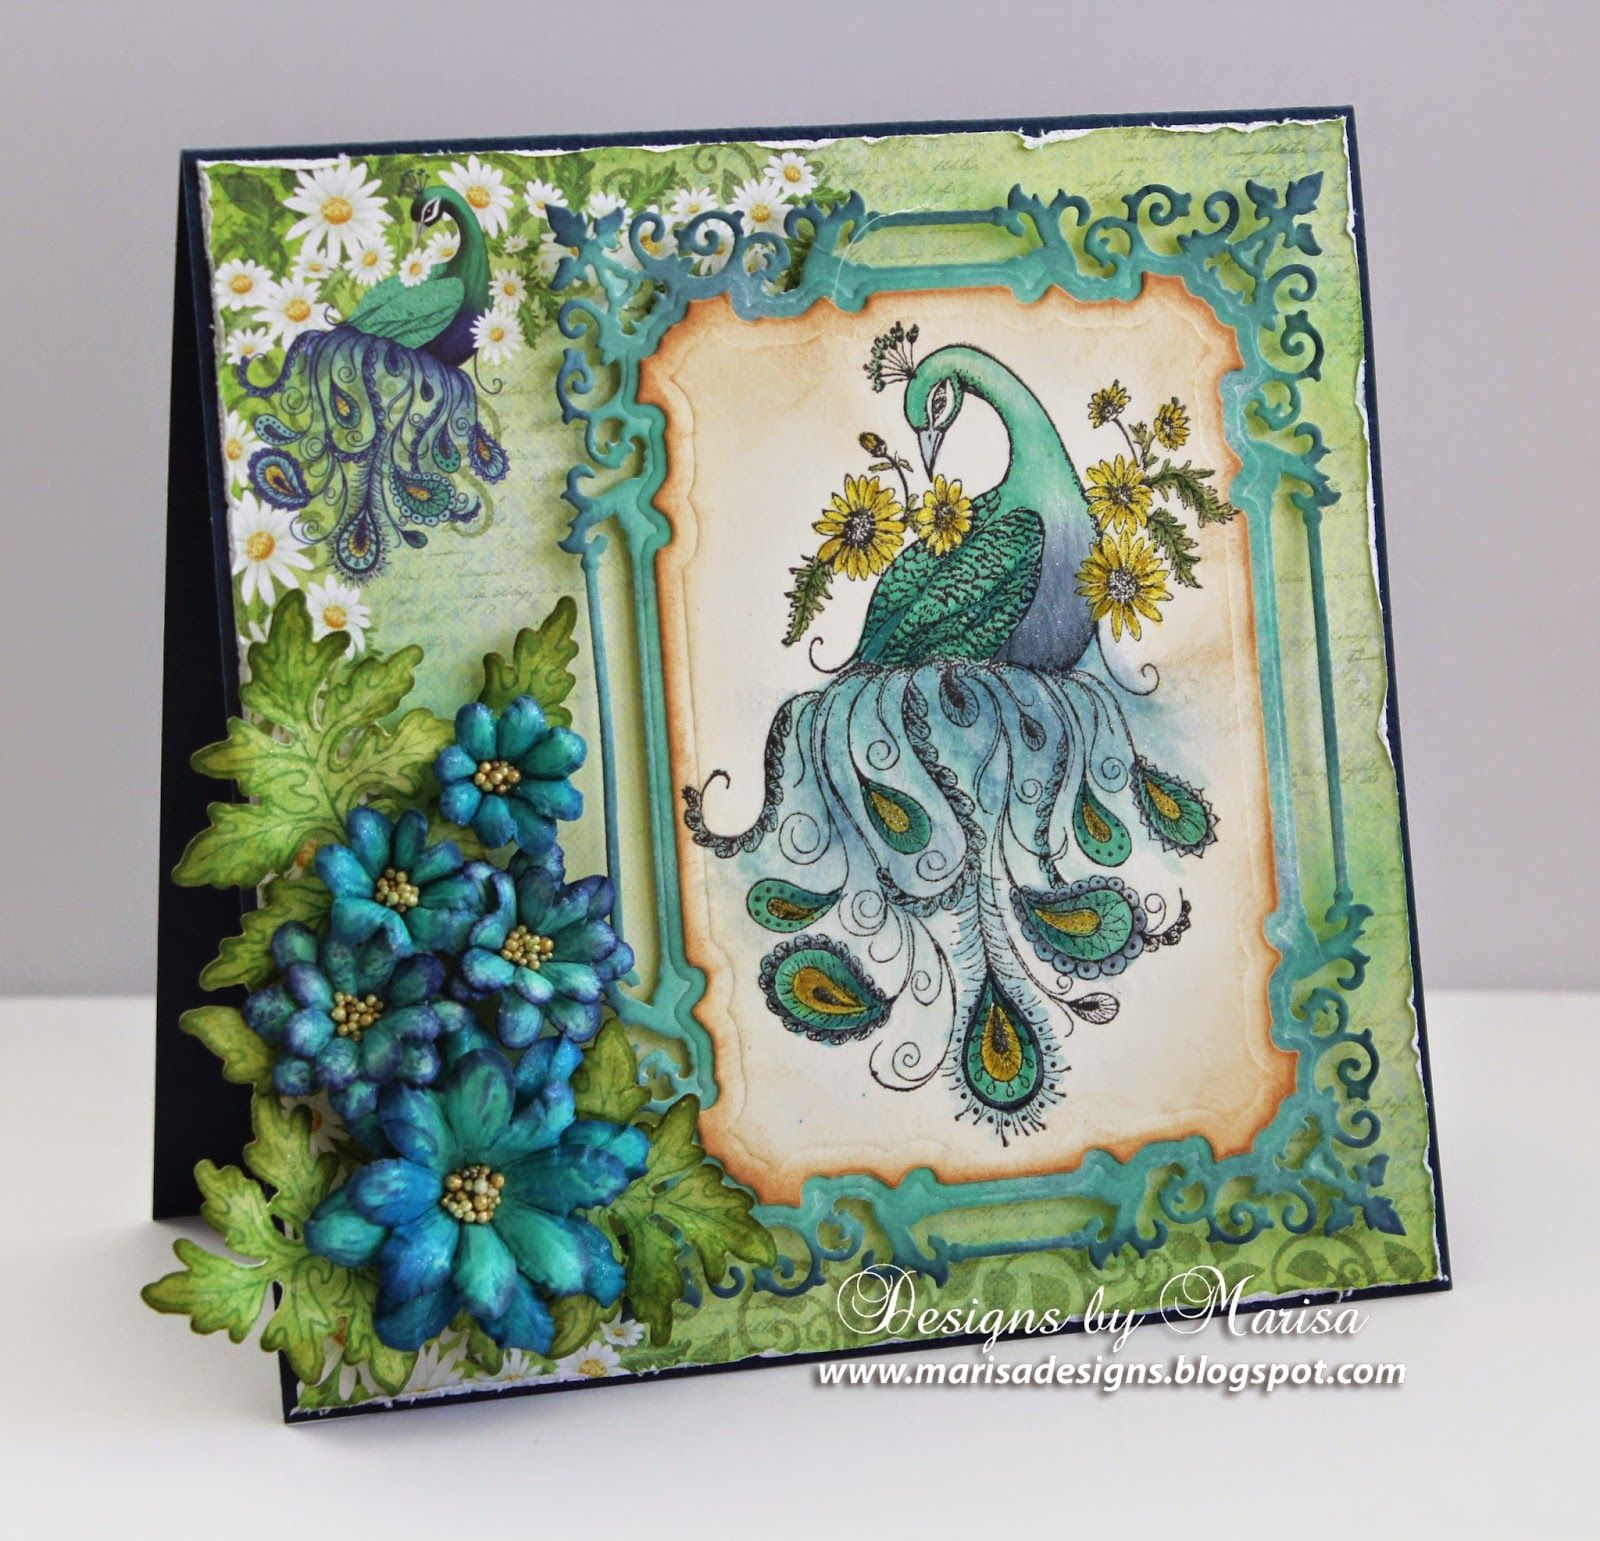 Designs by Marisa: Heartfelt Creations March Release - Peacock and Delightful Daisies Card